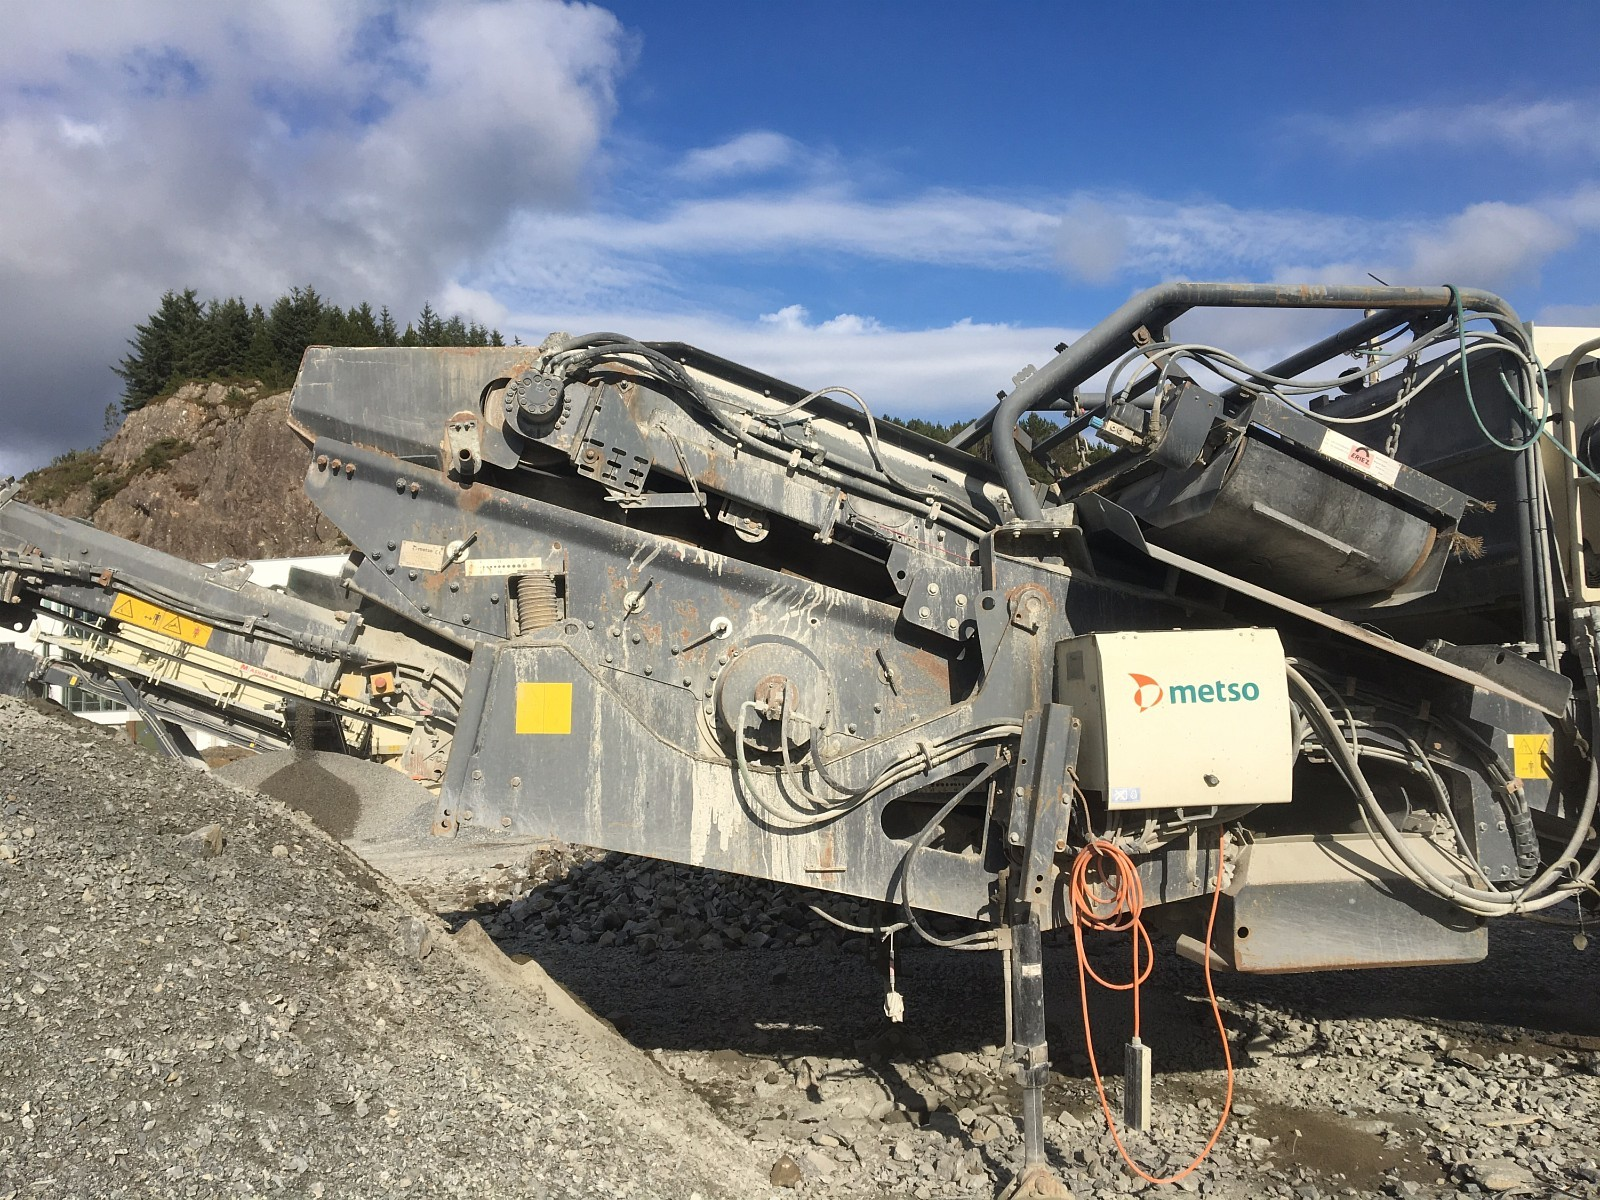 Metso LT 106 S For Sale   Omnia Machinery